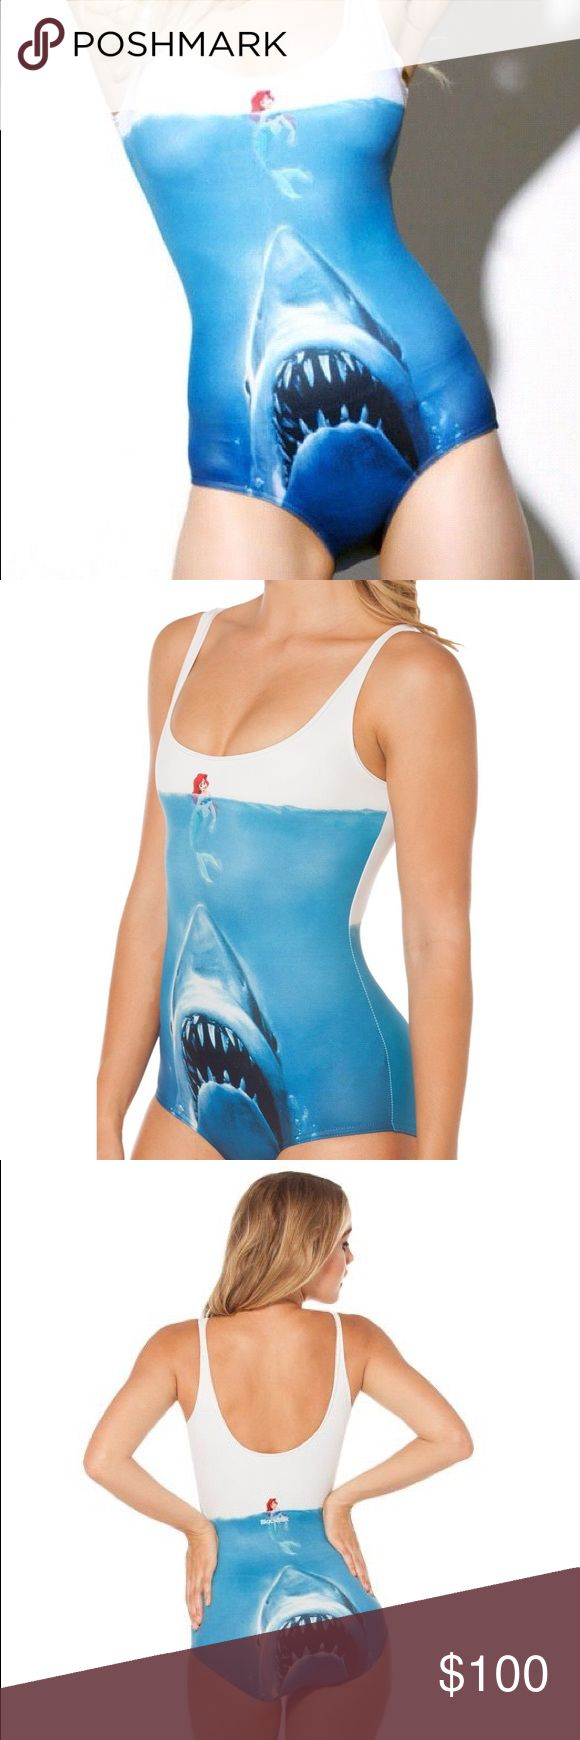 Black Milk Shark vs Mermaid Swimsuit Disney Ariel Great used condition, is a size Long torso large. Description: Mermaids and sharks ... they both live in the ocean. It was only a matter of time before their worlds collided - with tragic consequences. Yeah, try singing your way out of that one, darling.  Composition: 82% Polyester, 18% Elastane Washing: Machine wash cold, gentle cycle with like colours Made in: Australia Blackmilk Swim One Pieces